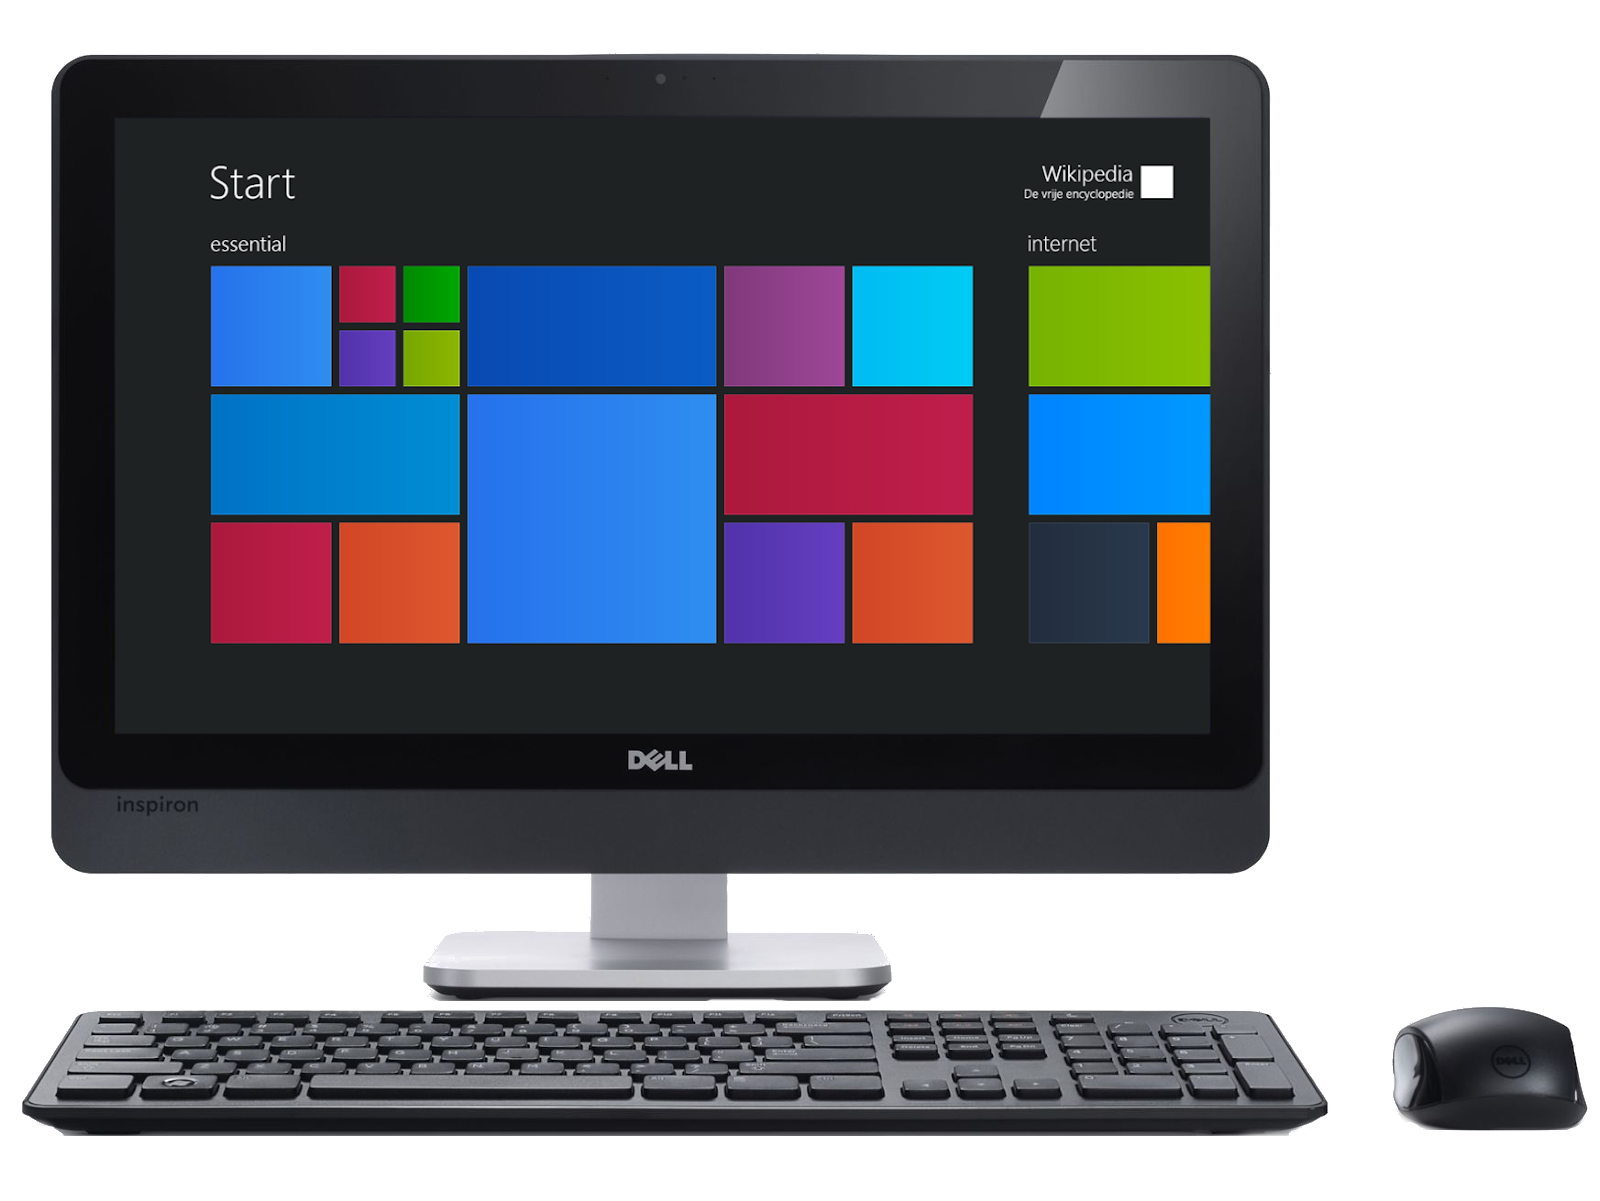 Dell_Inspiron_One_23_Touch_AIO_Desktop_PC.png